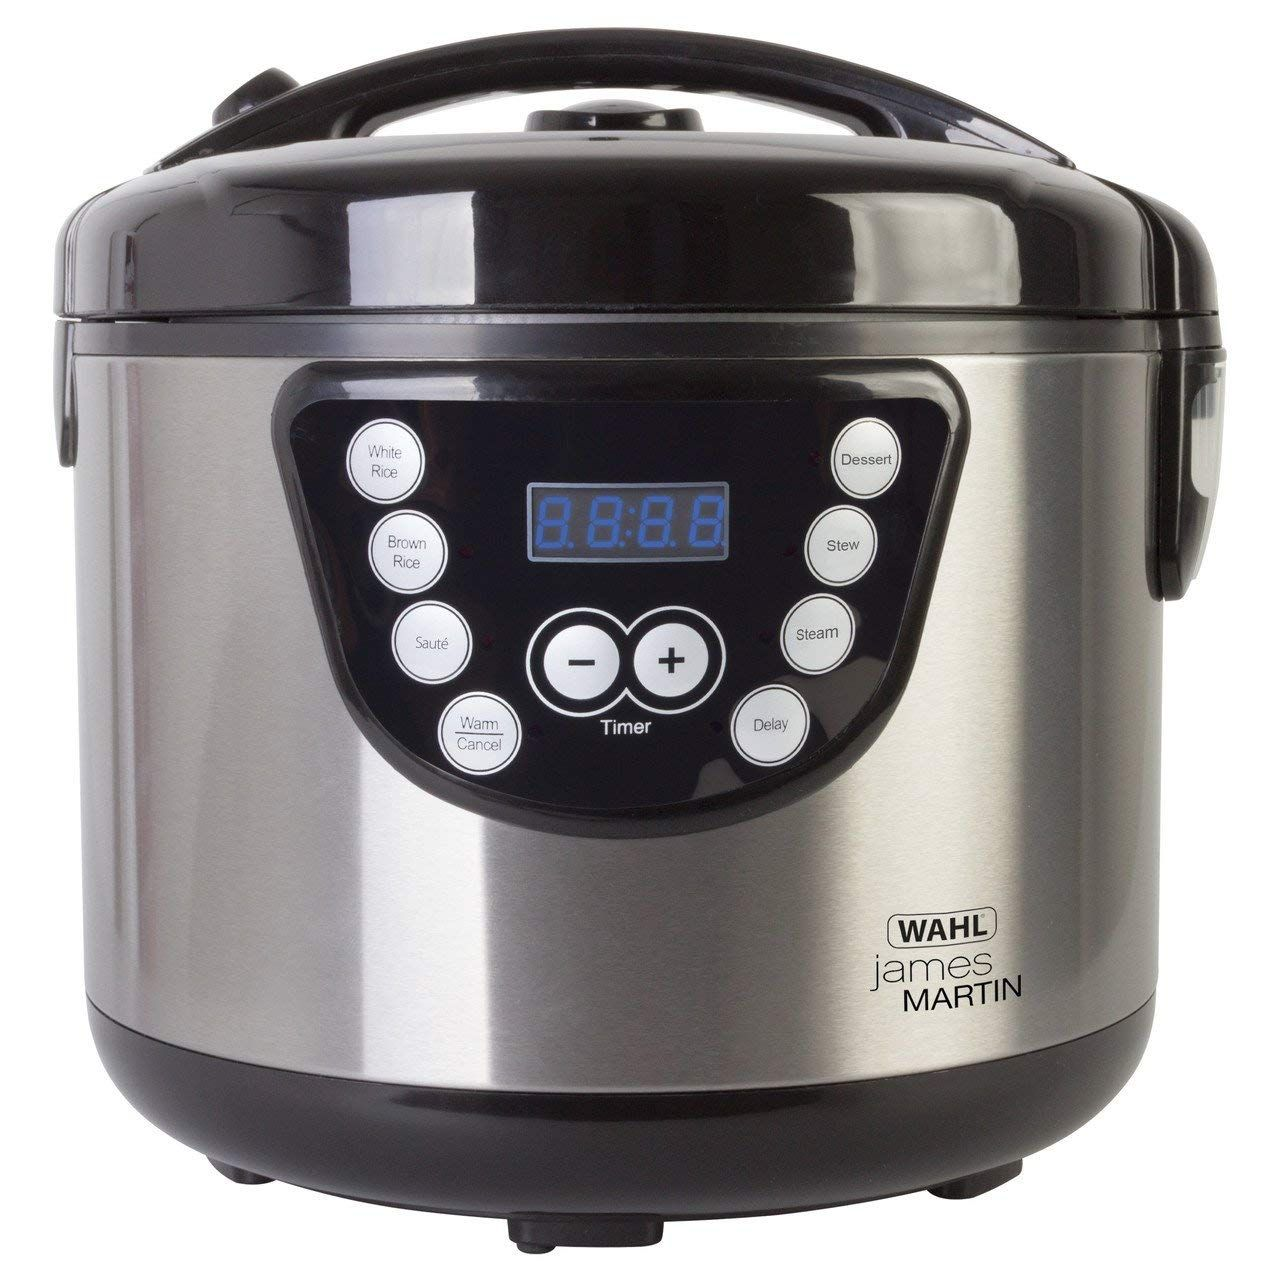 James martin by wahl zx multi cooker amazon kitchen